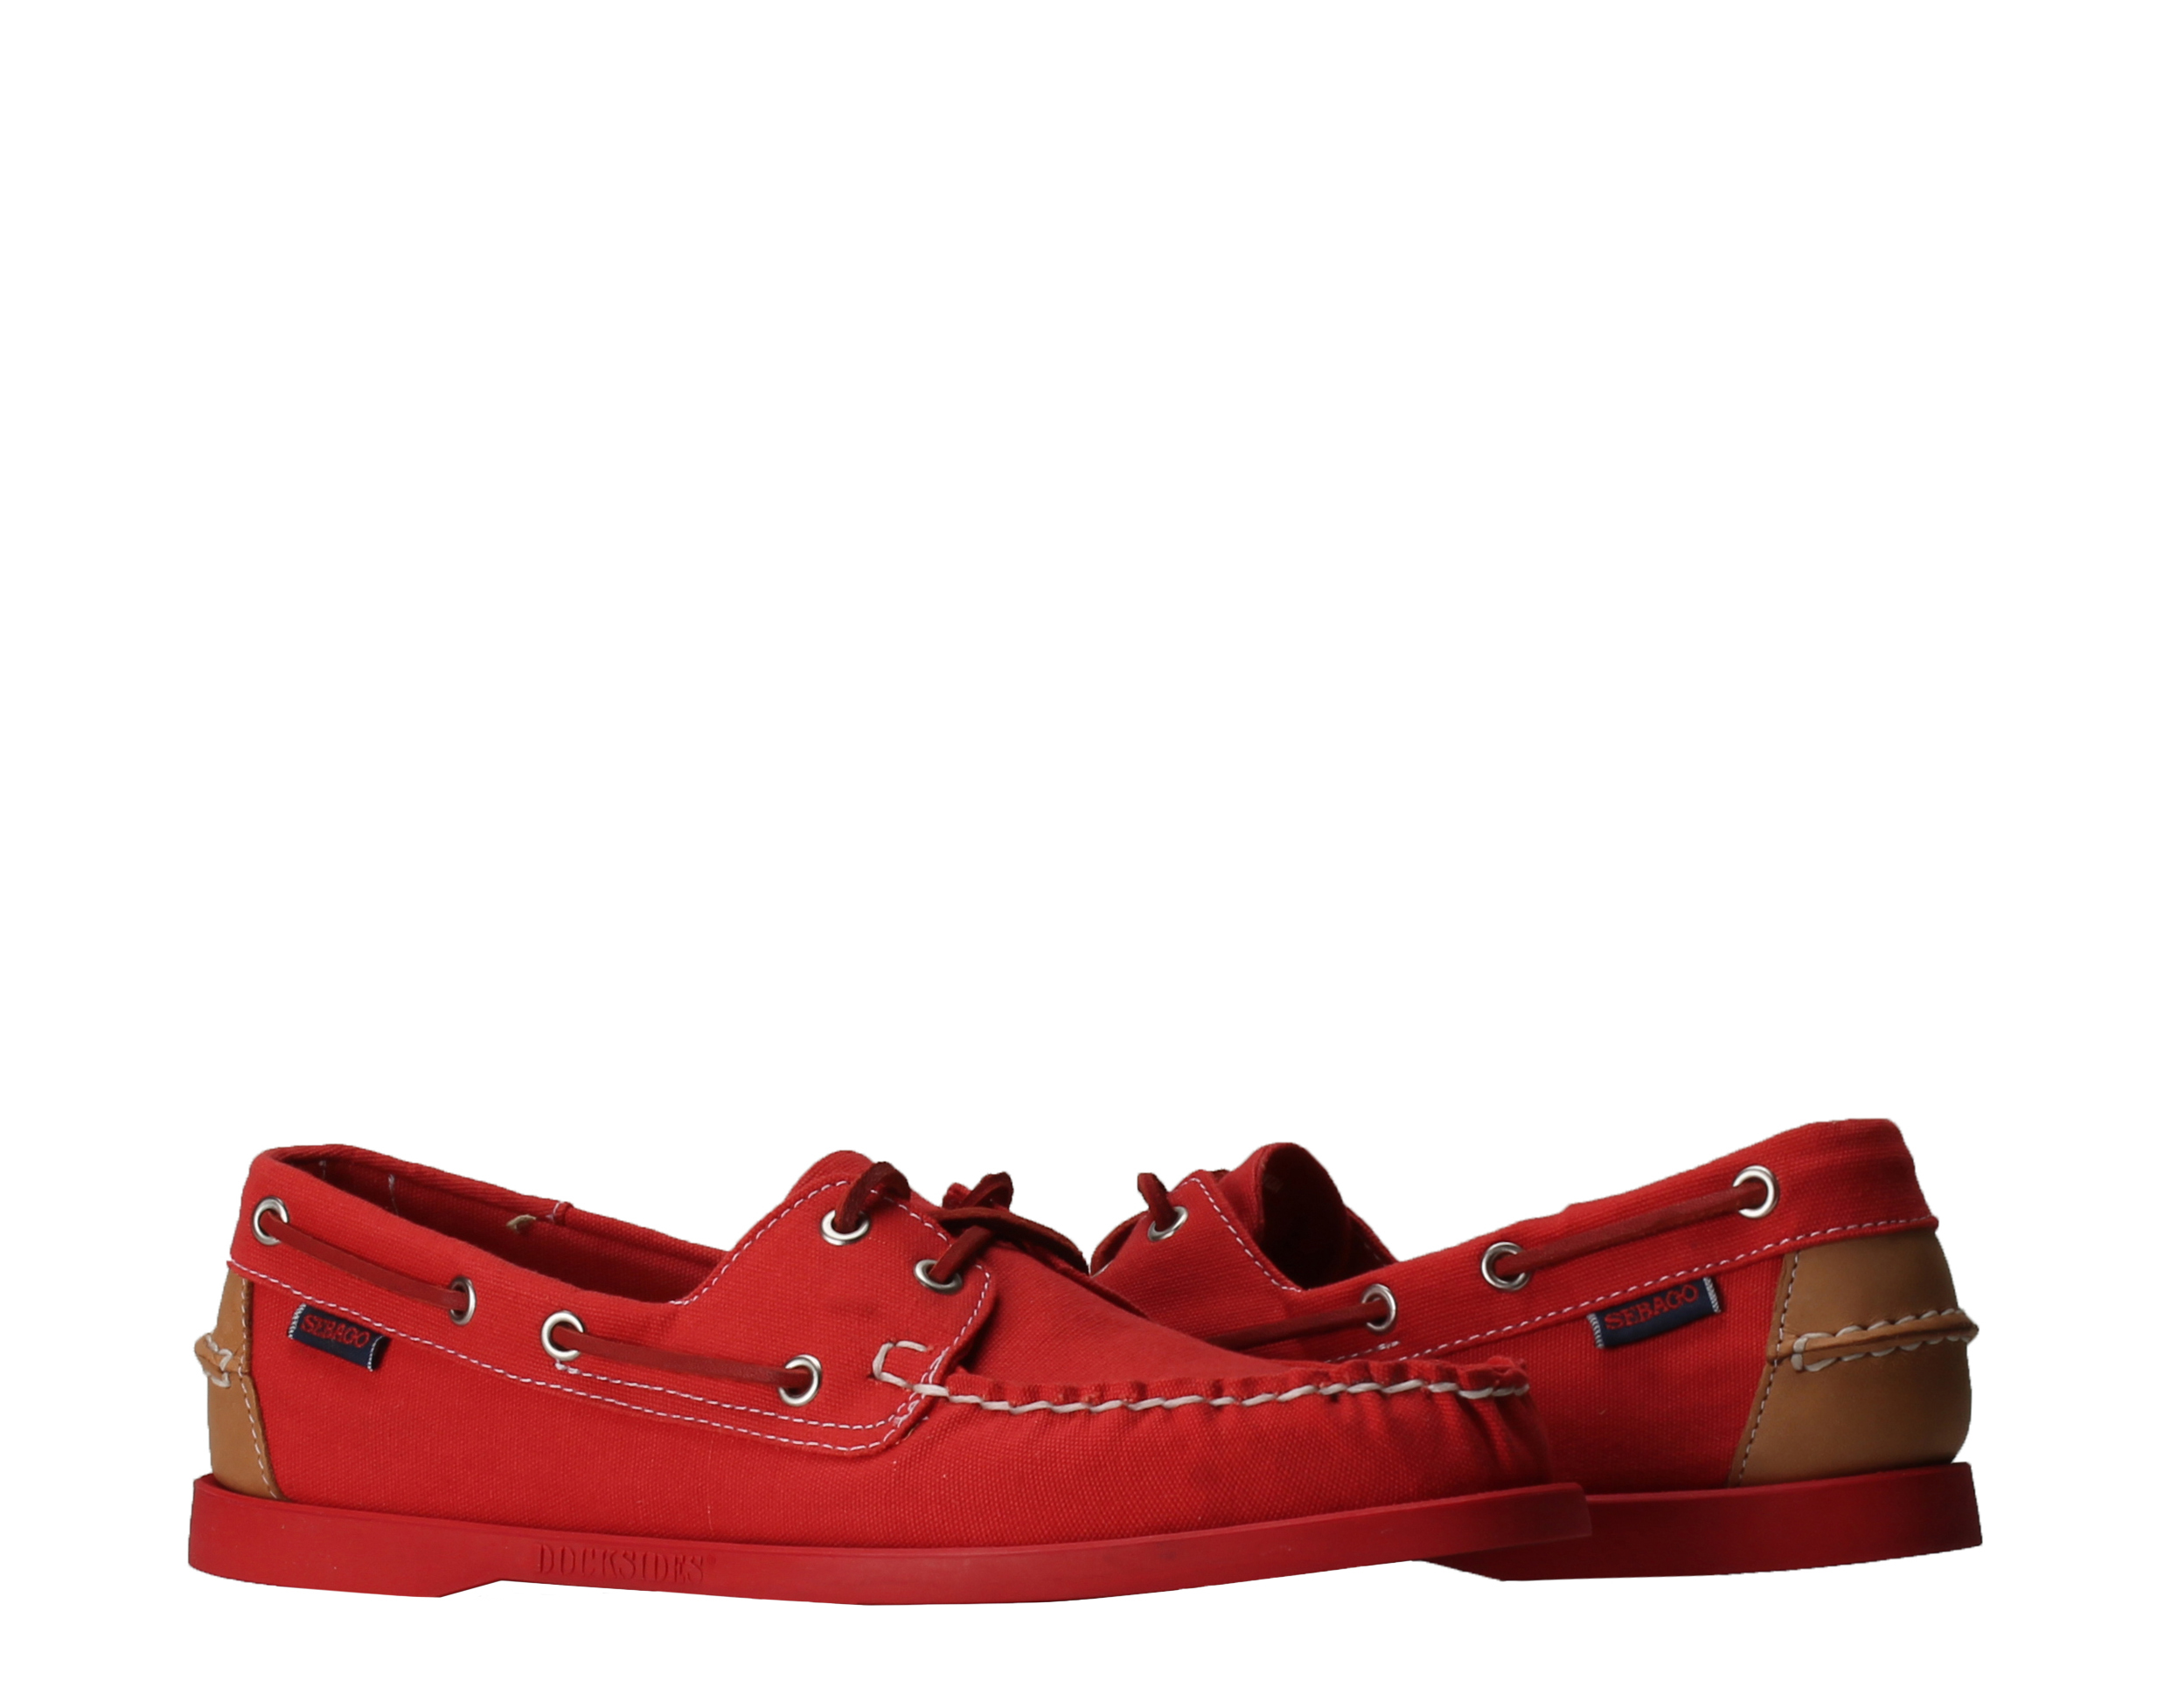 Sebago Docksides Red Canvas Tan Leather Men's Boat Shoes B720148 by